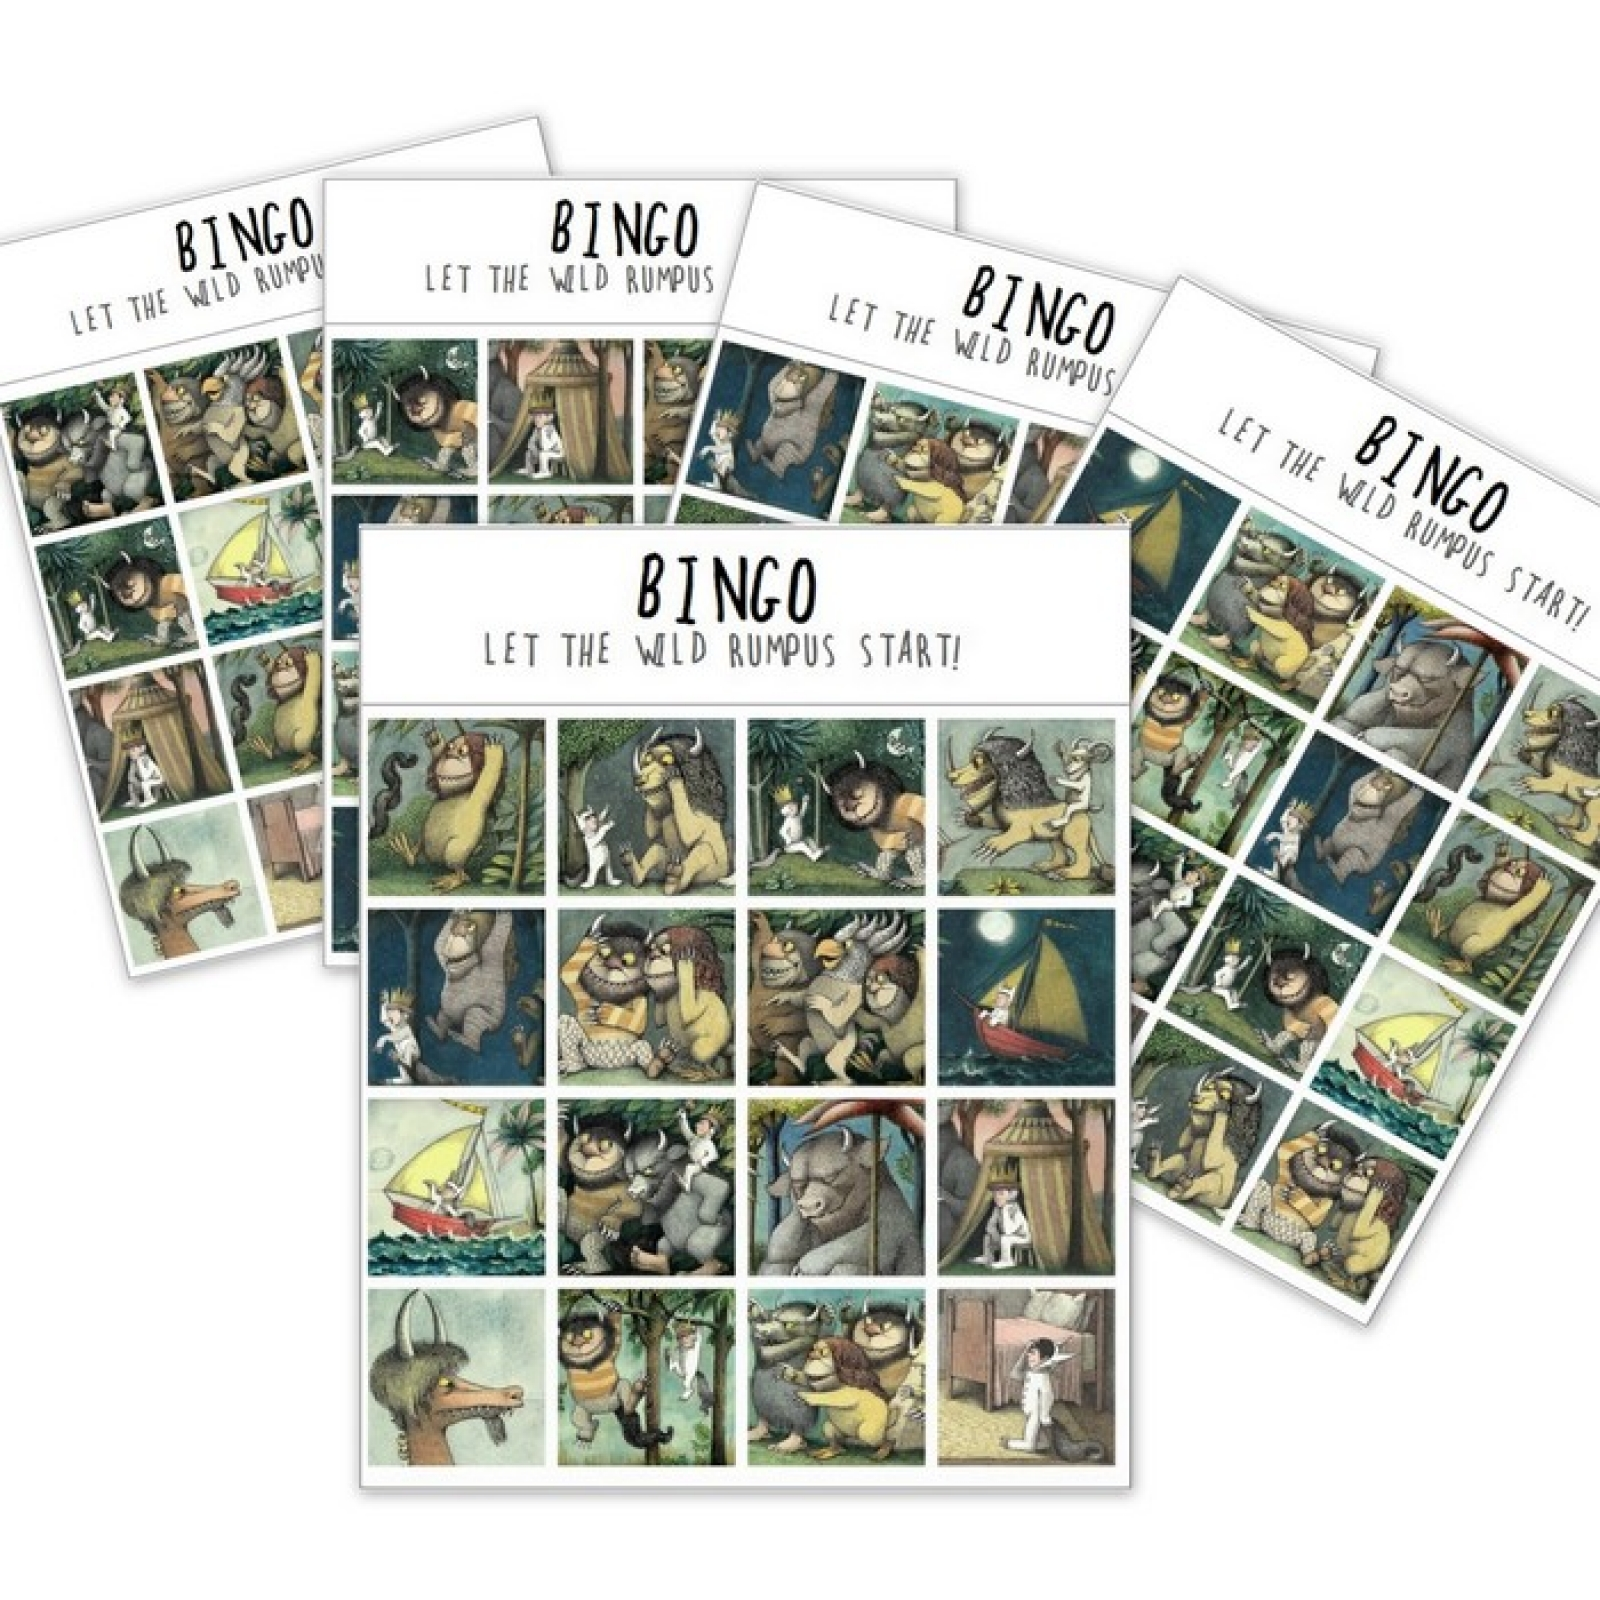 photo about Let the Wild Rumpus Start Printable known as BINGO! PDF down load wild elements recreation (24 playing cards)